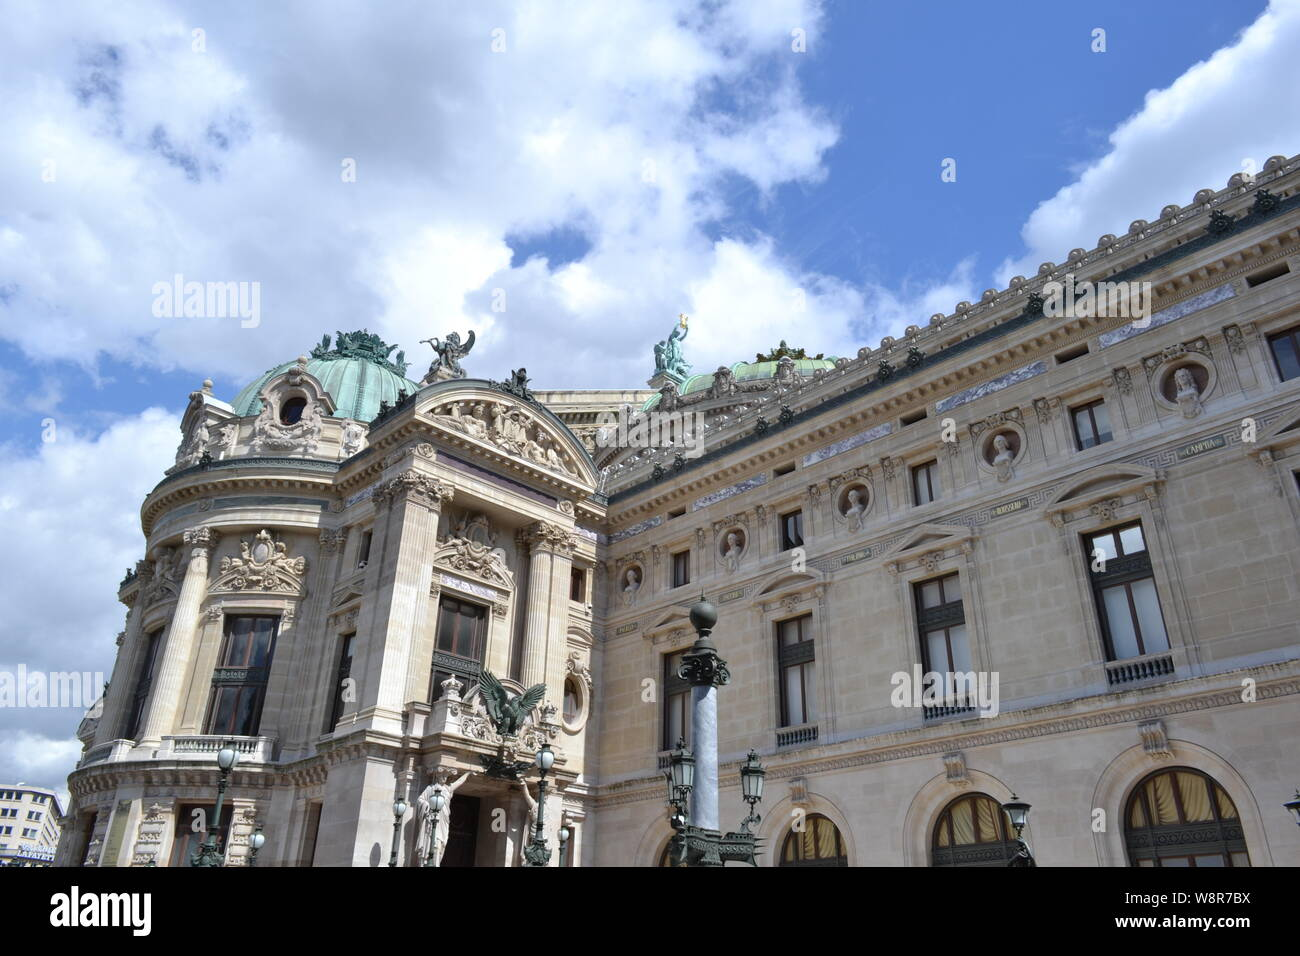 Paris/France - August 19, 2014: Facade of the Opera de Paris and National Academy of music with bronze statues on the roof in a sunny weather. Stock Photo